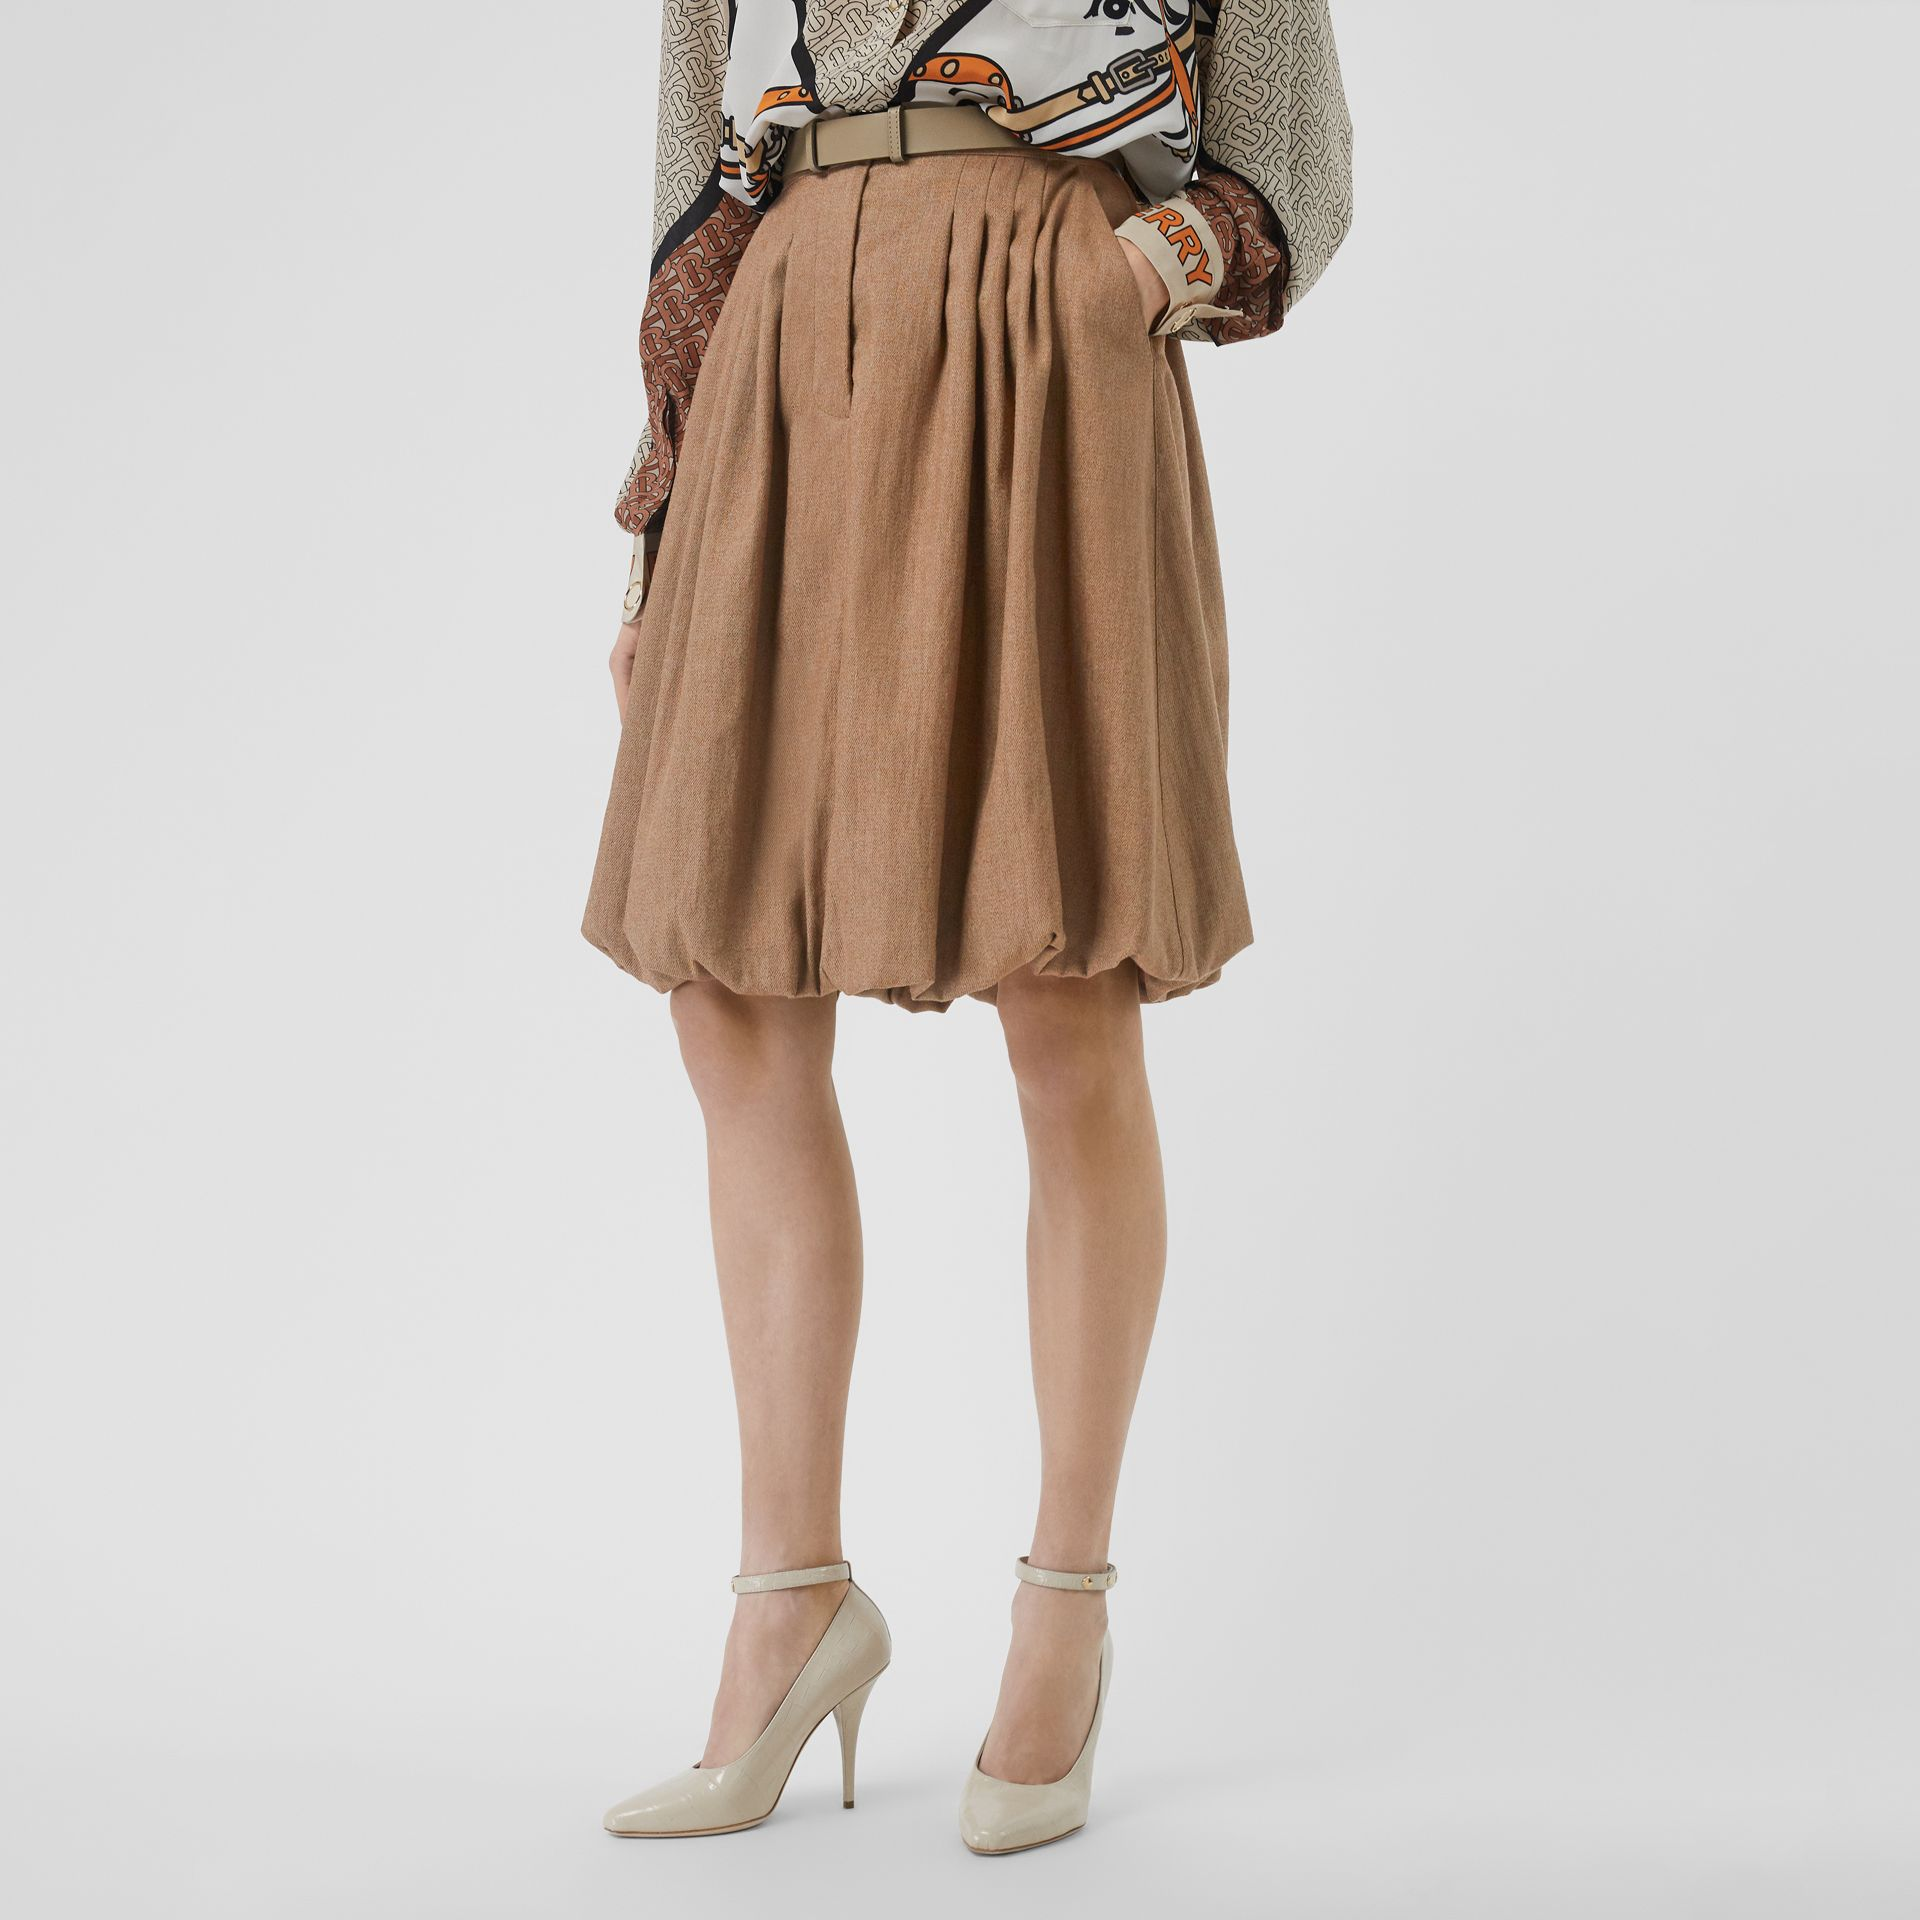 Linen Blend Bubble Hem Skirt in Driftwood - Women | Burberry Australia - gallery image 4